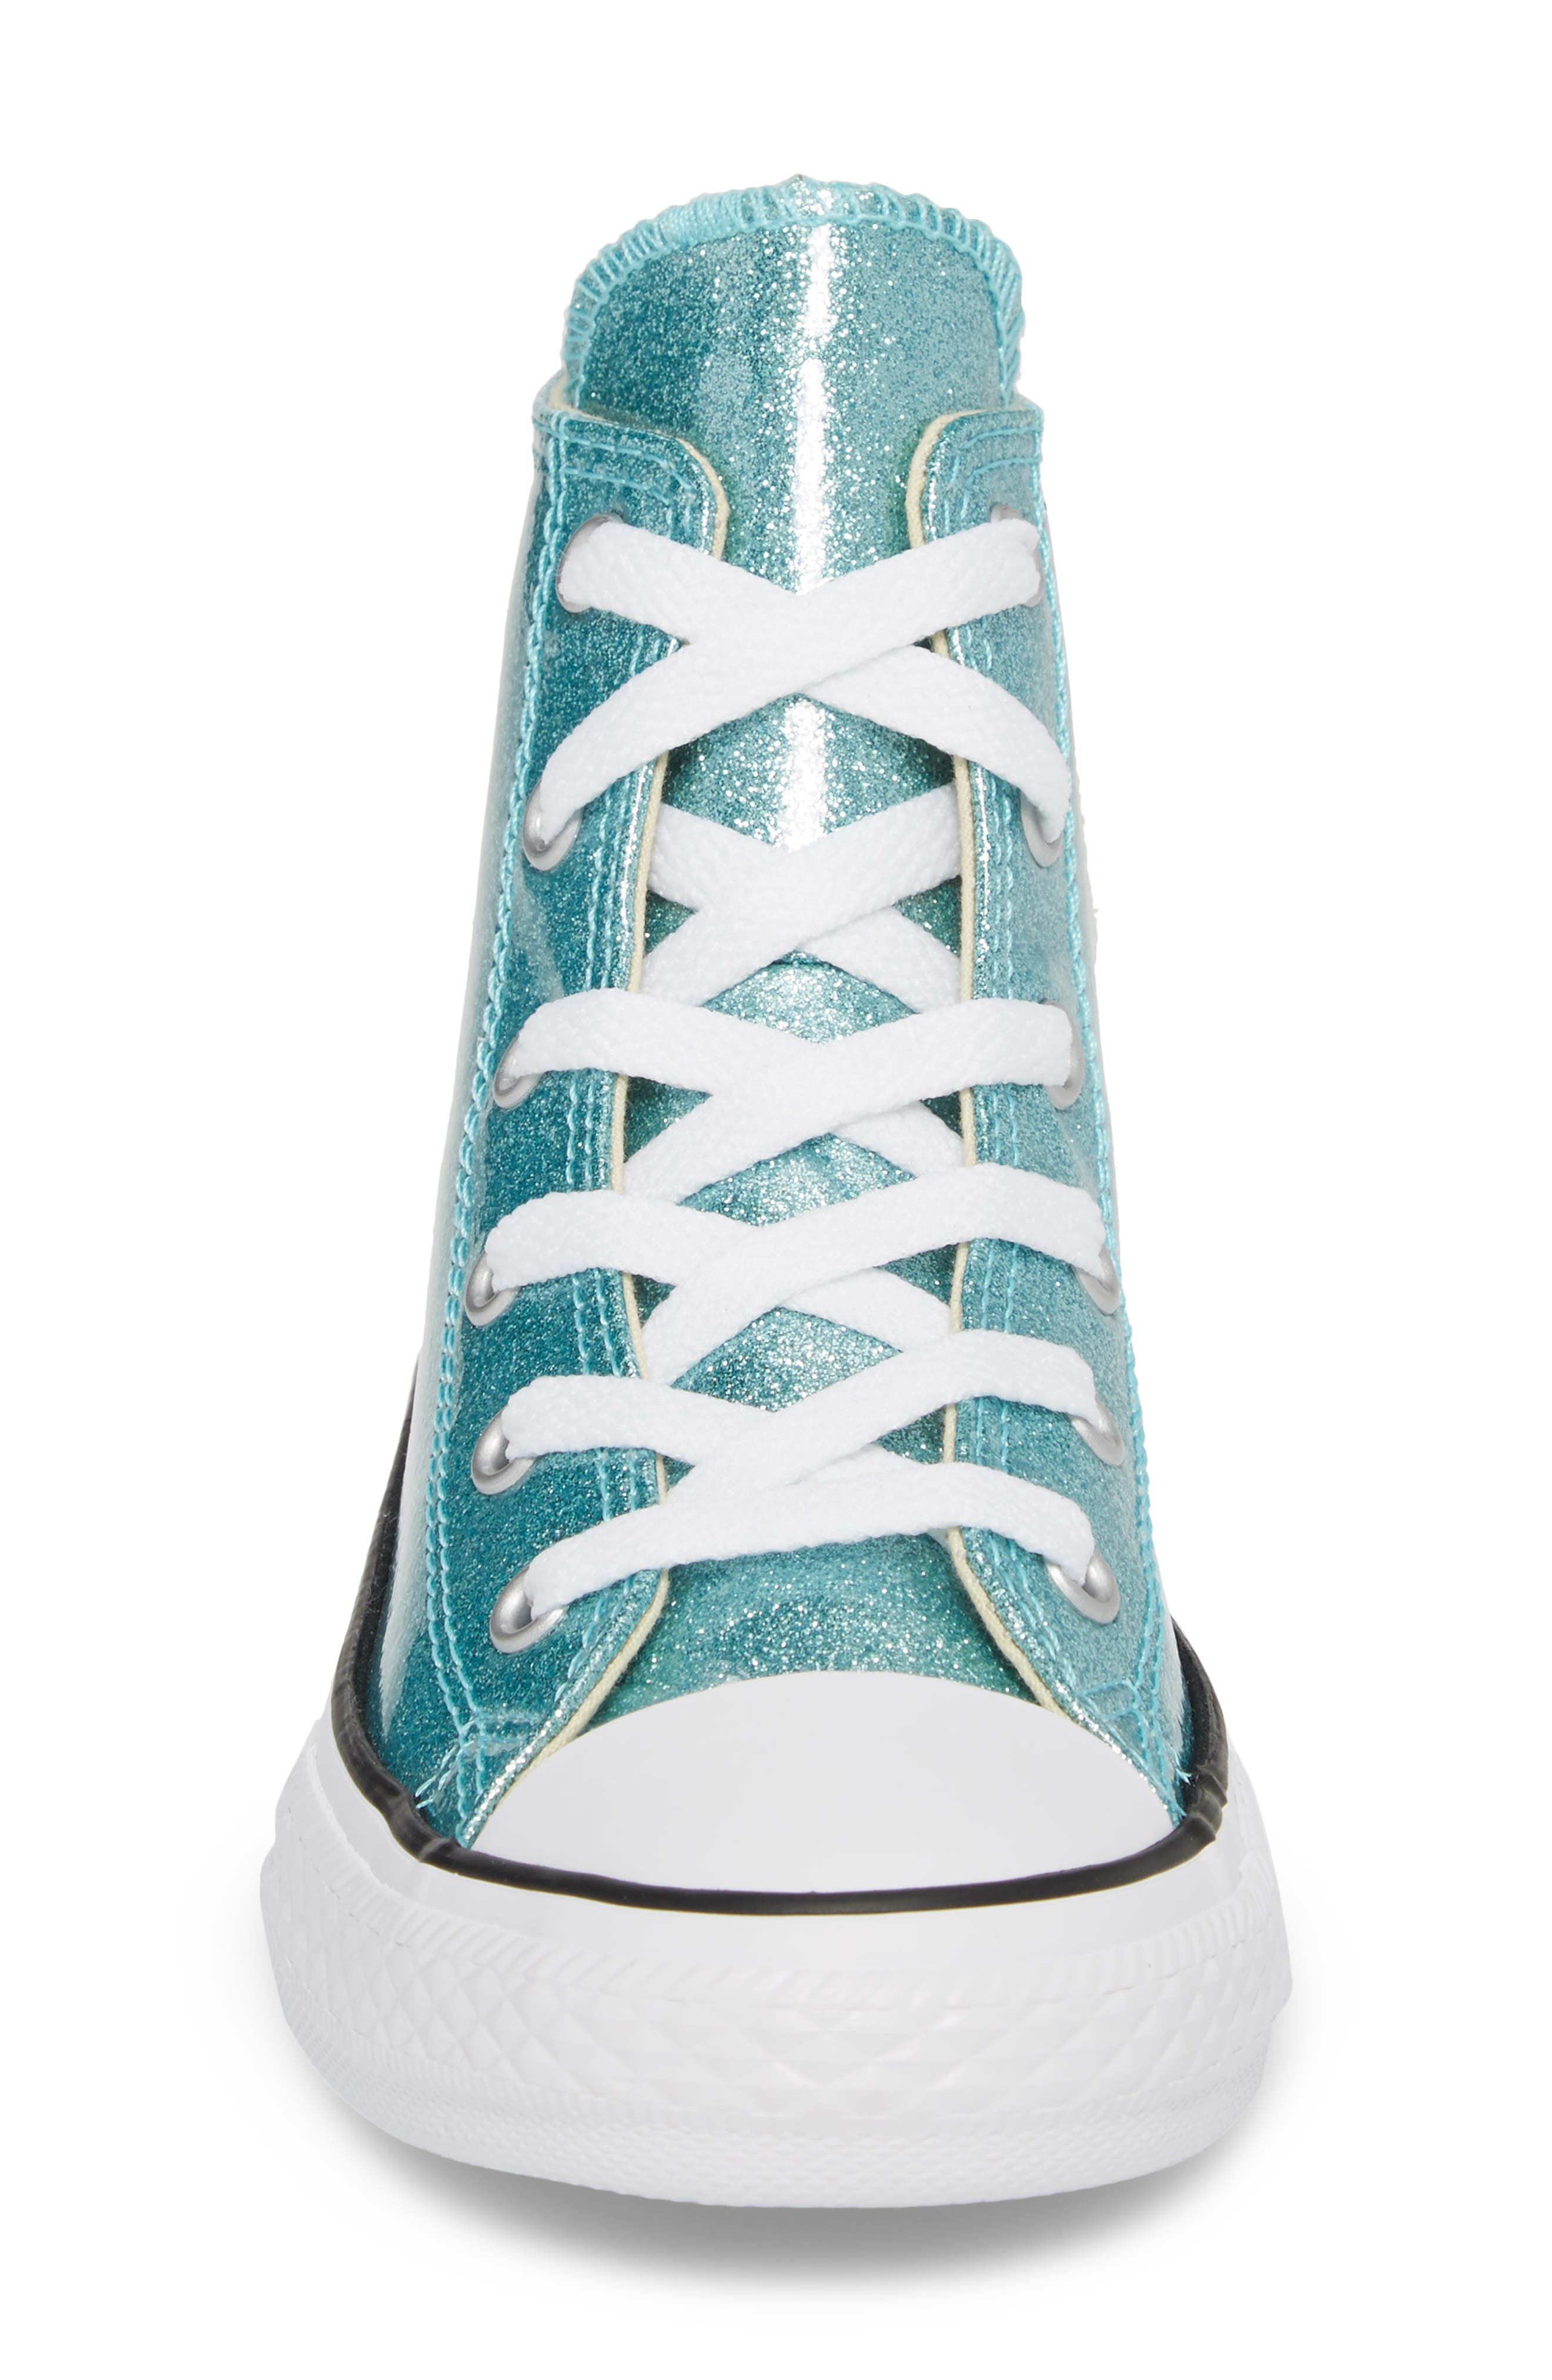 All Star<sup>®</sup> Glitter High Top Sneaker,                             Alternate thumbnail 4, color,                             400